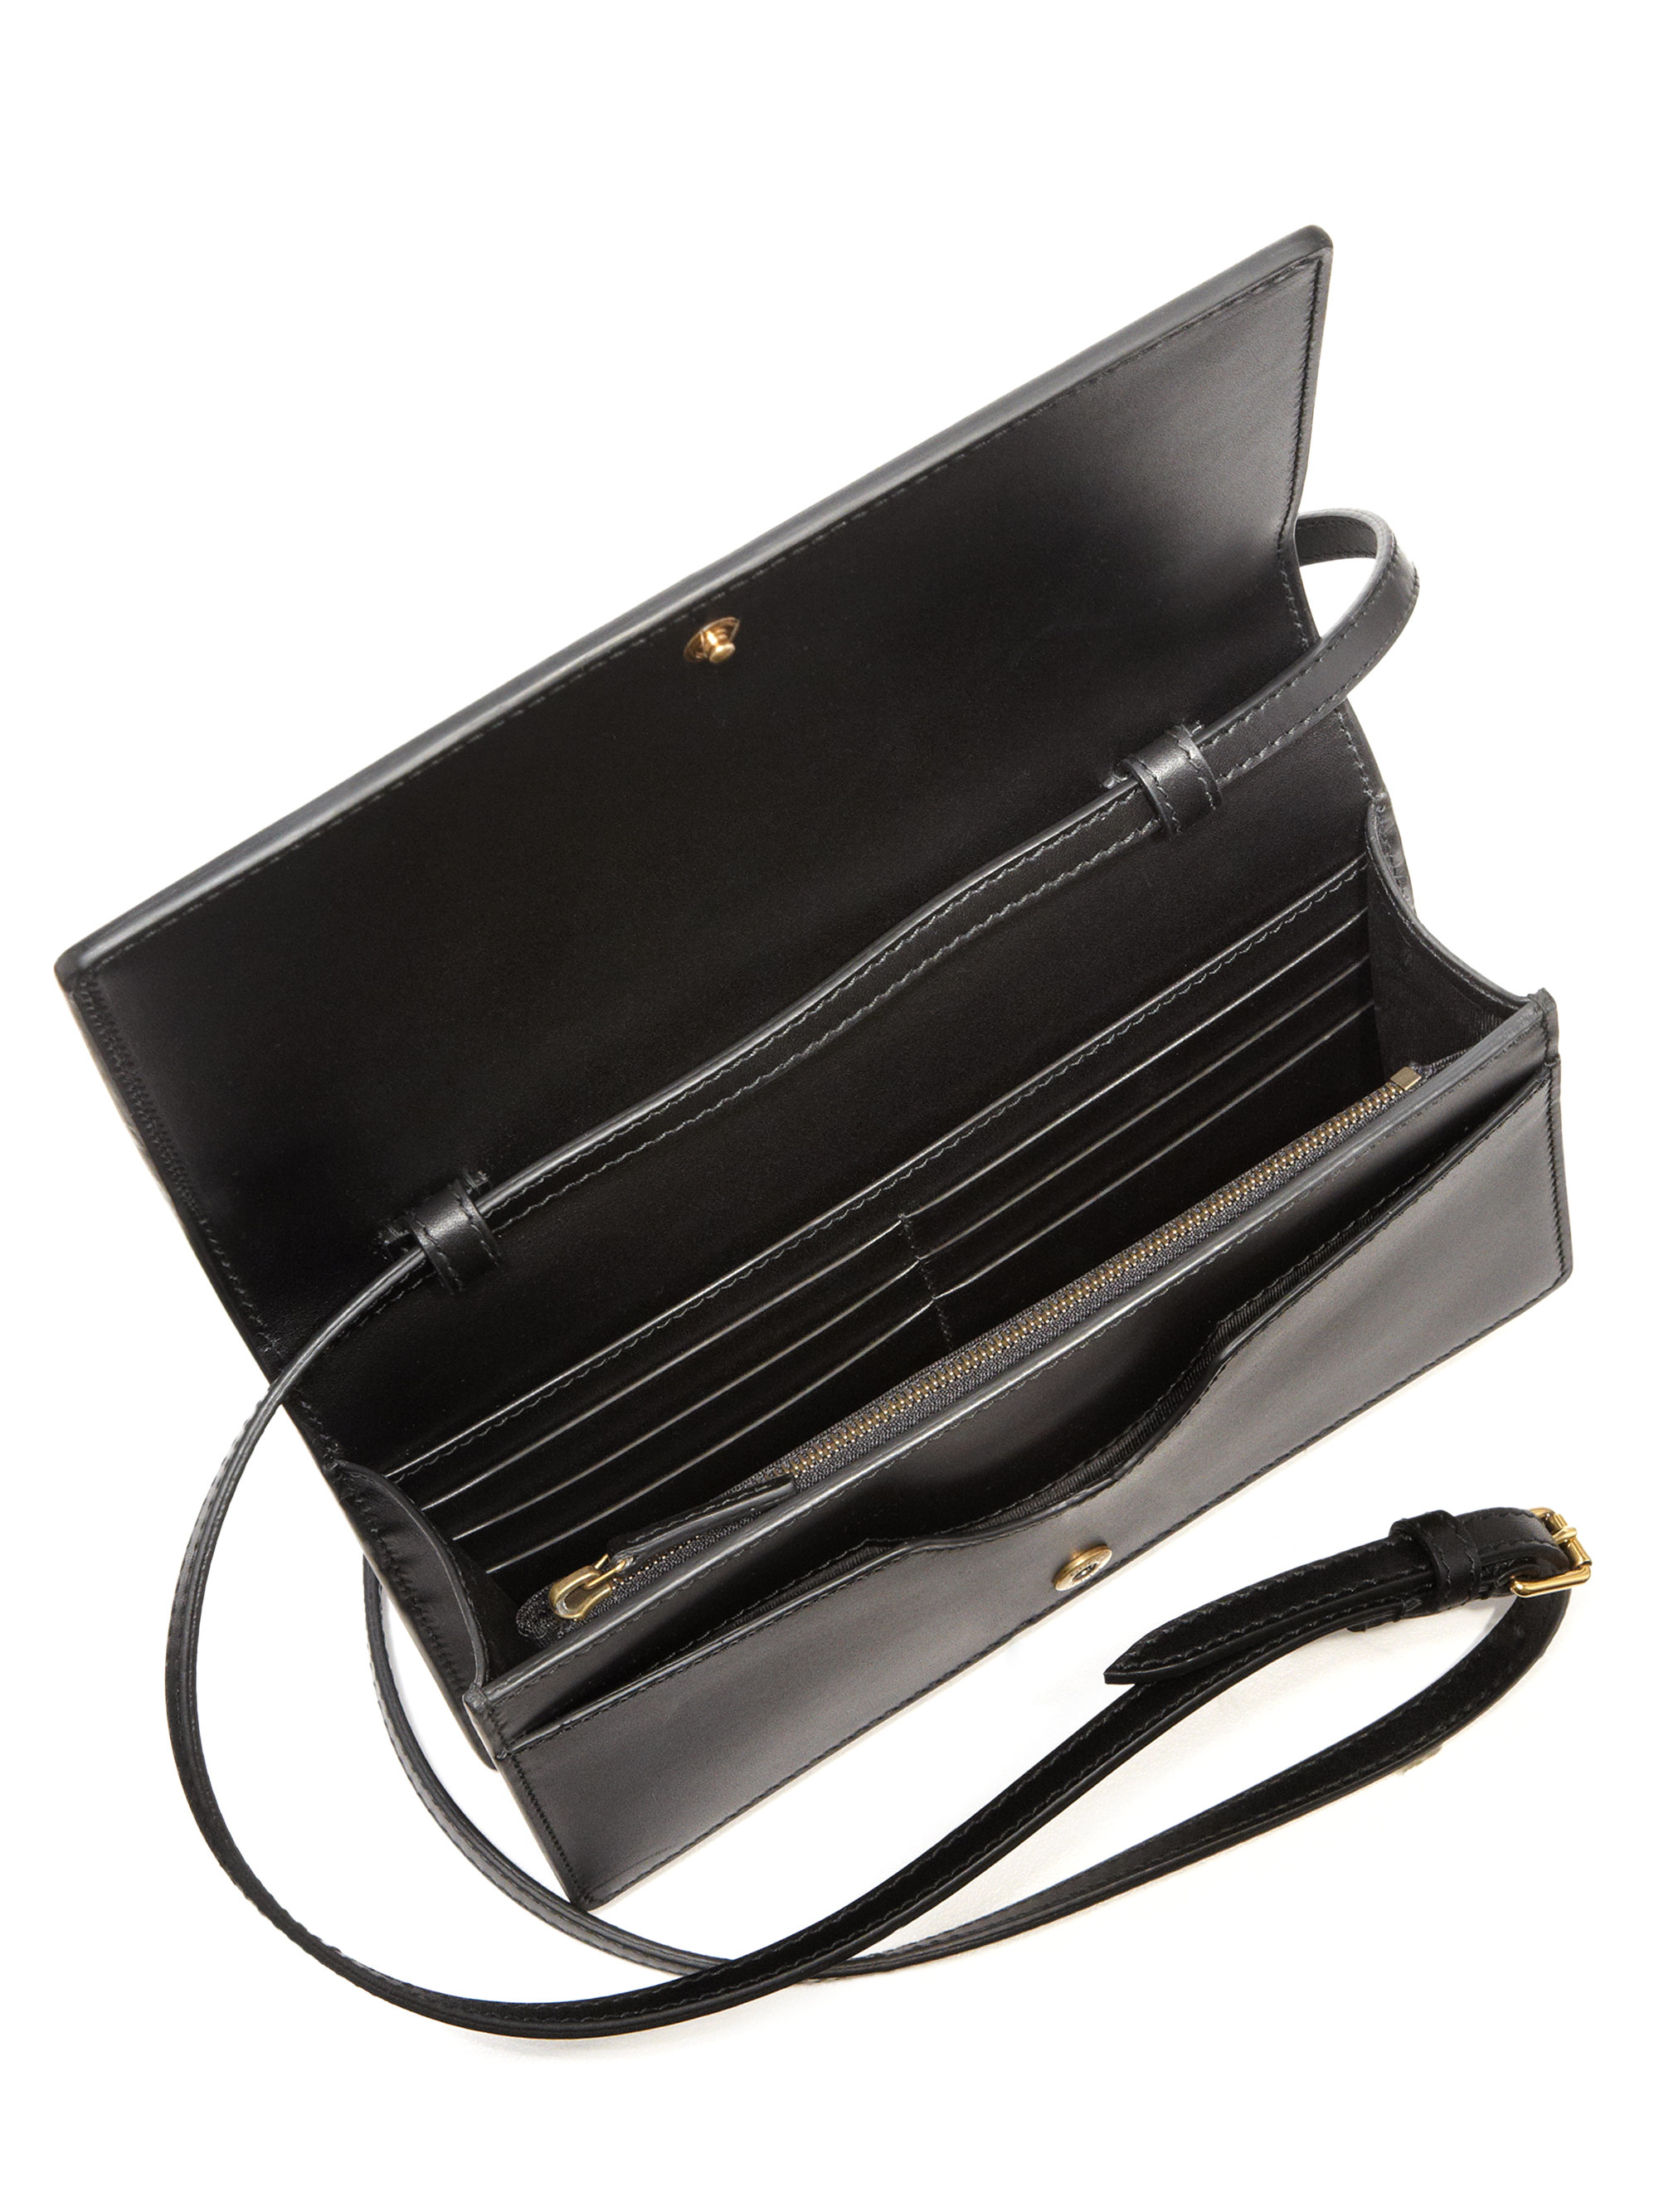 210b764d875247 Gucci Vintage Web Wallet With Strap | Stanford Center for ...